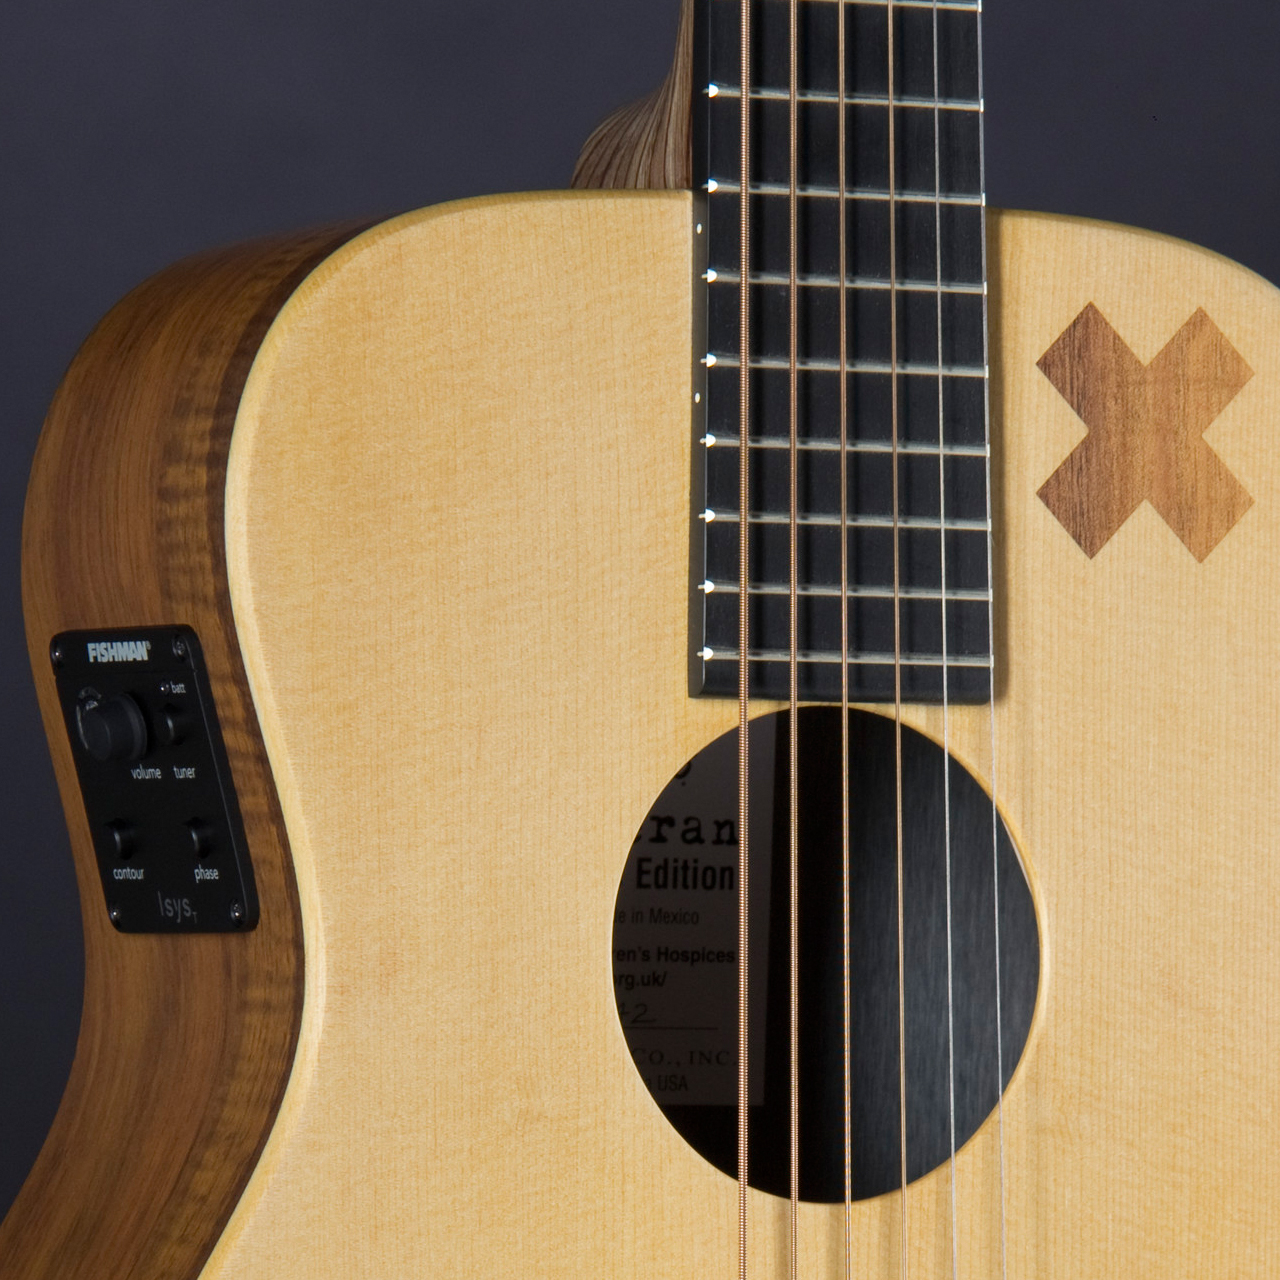 MARTIN Ed Sheeran 2 X Signature Edition